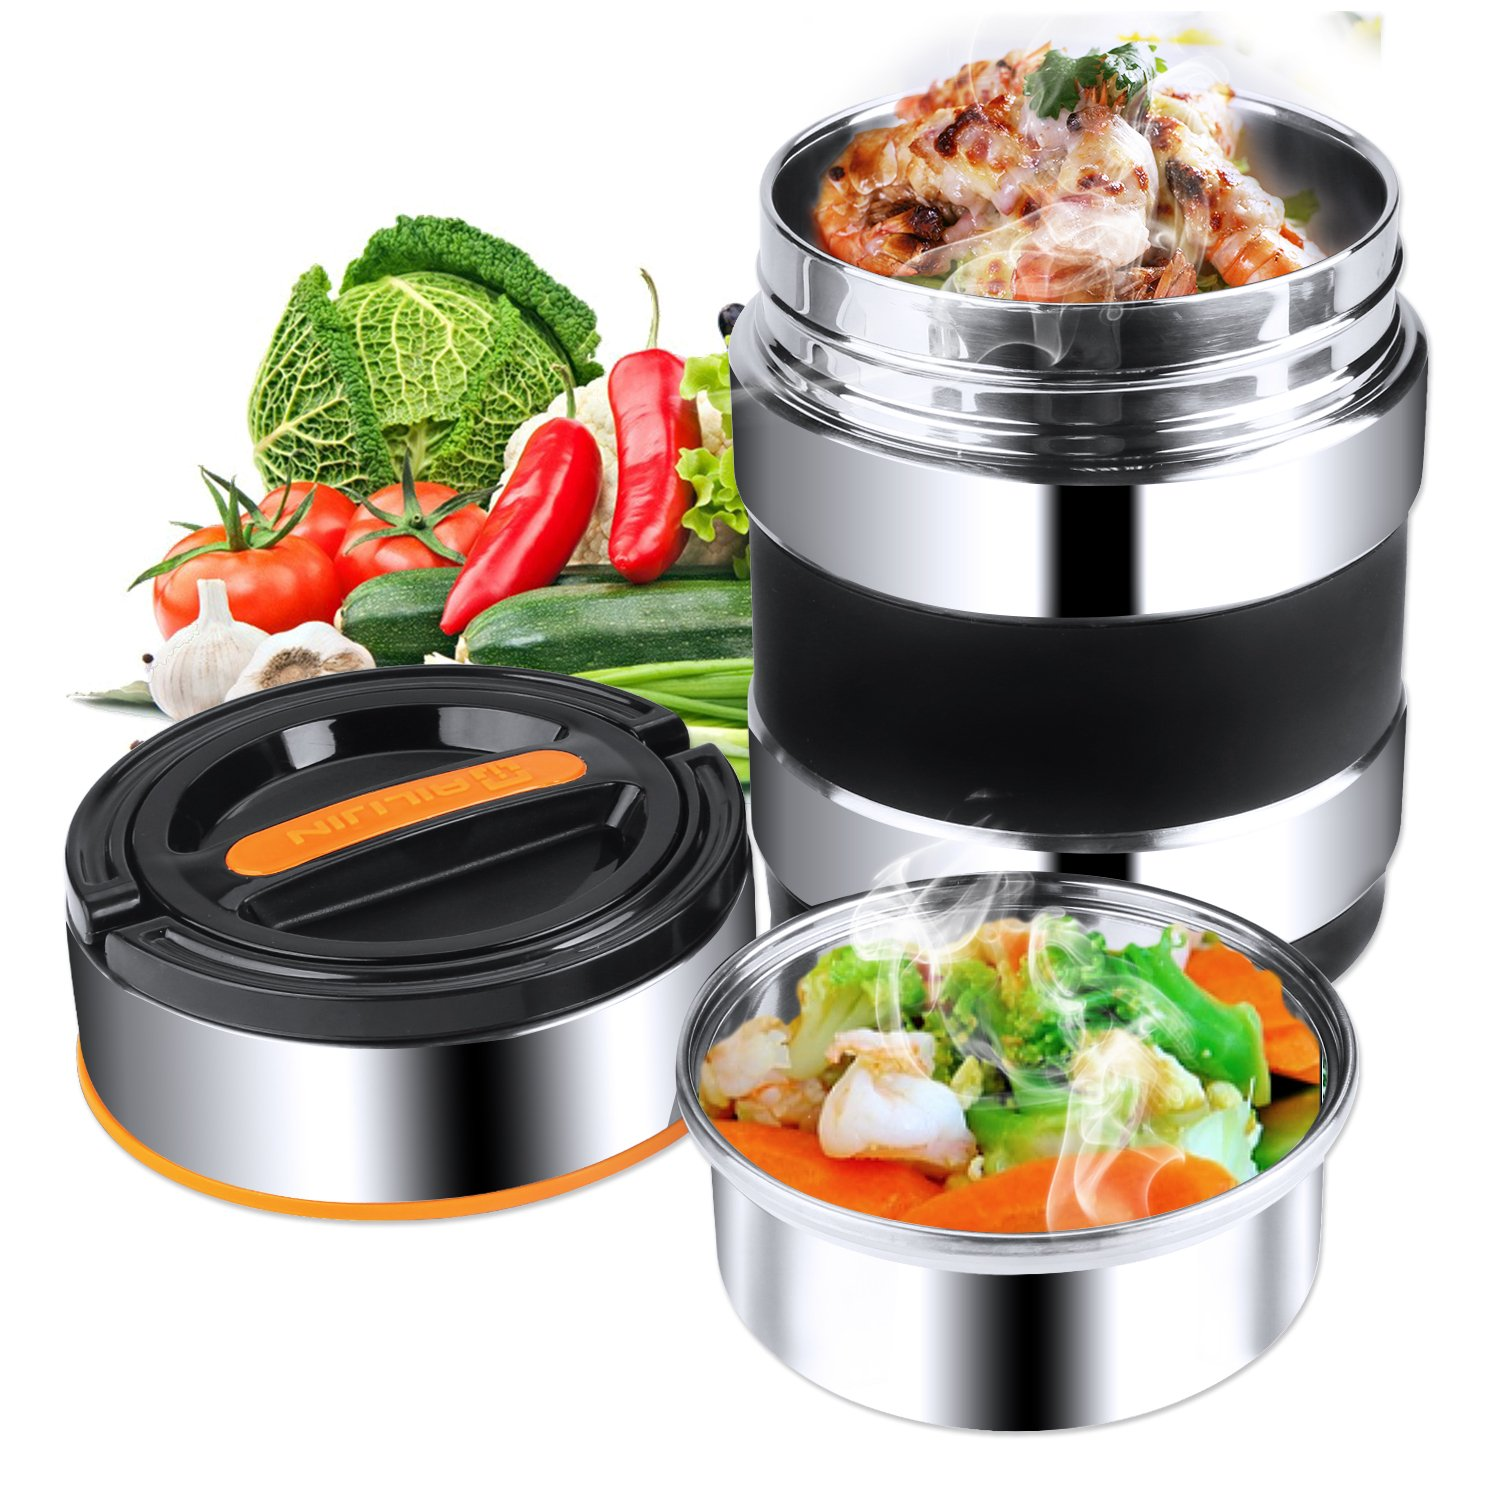 Elfhao Vacuum Insulated Stainless Steel Lunch Box Food Carrier Stainless Steel Bento Box Thermal Container Travel Hiking Camping Picnics Storage Boxes 1.4L Black